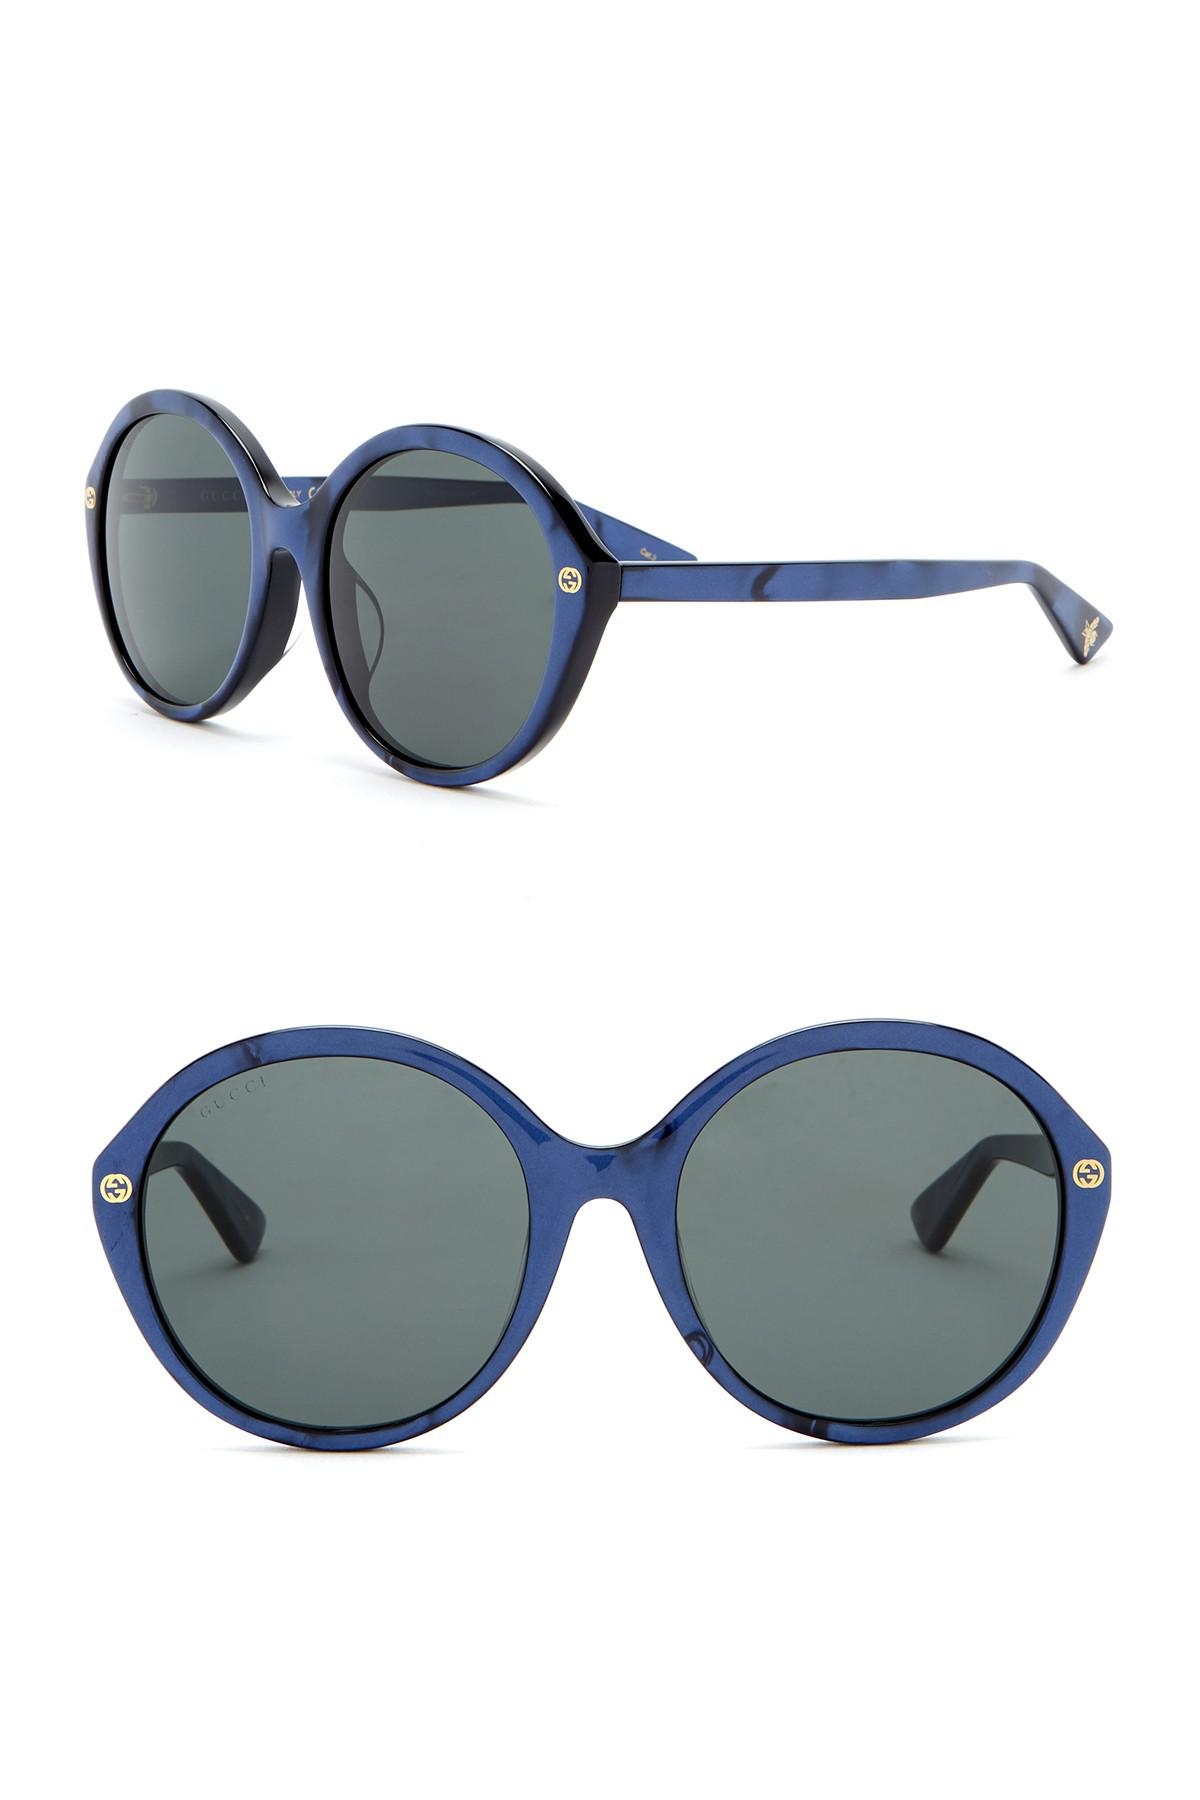 07d07a65154 Lyst - Gucci 57mm Round Sunglasses in Blue